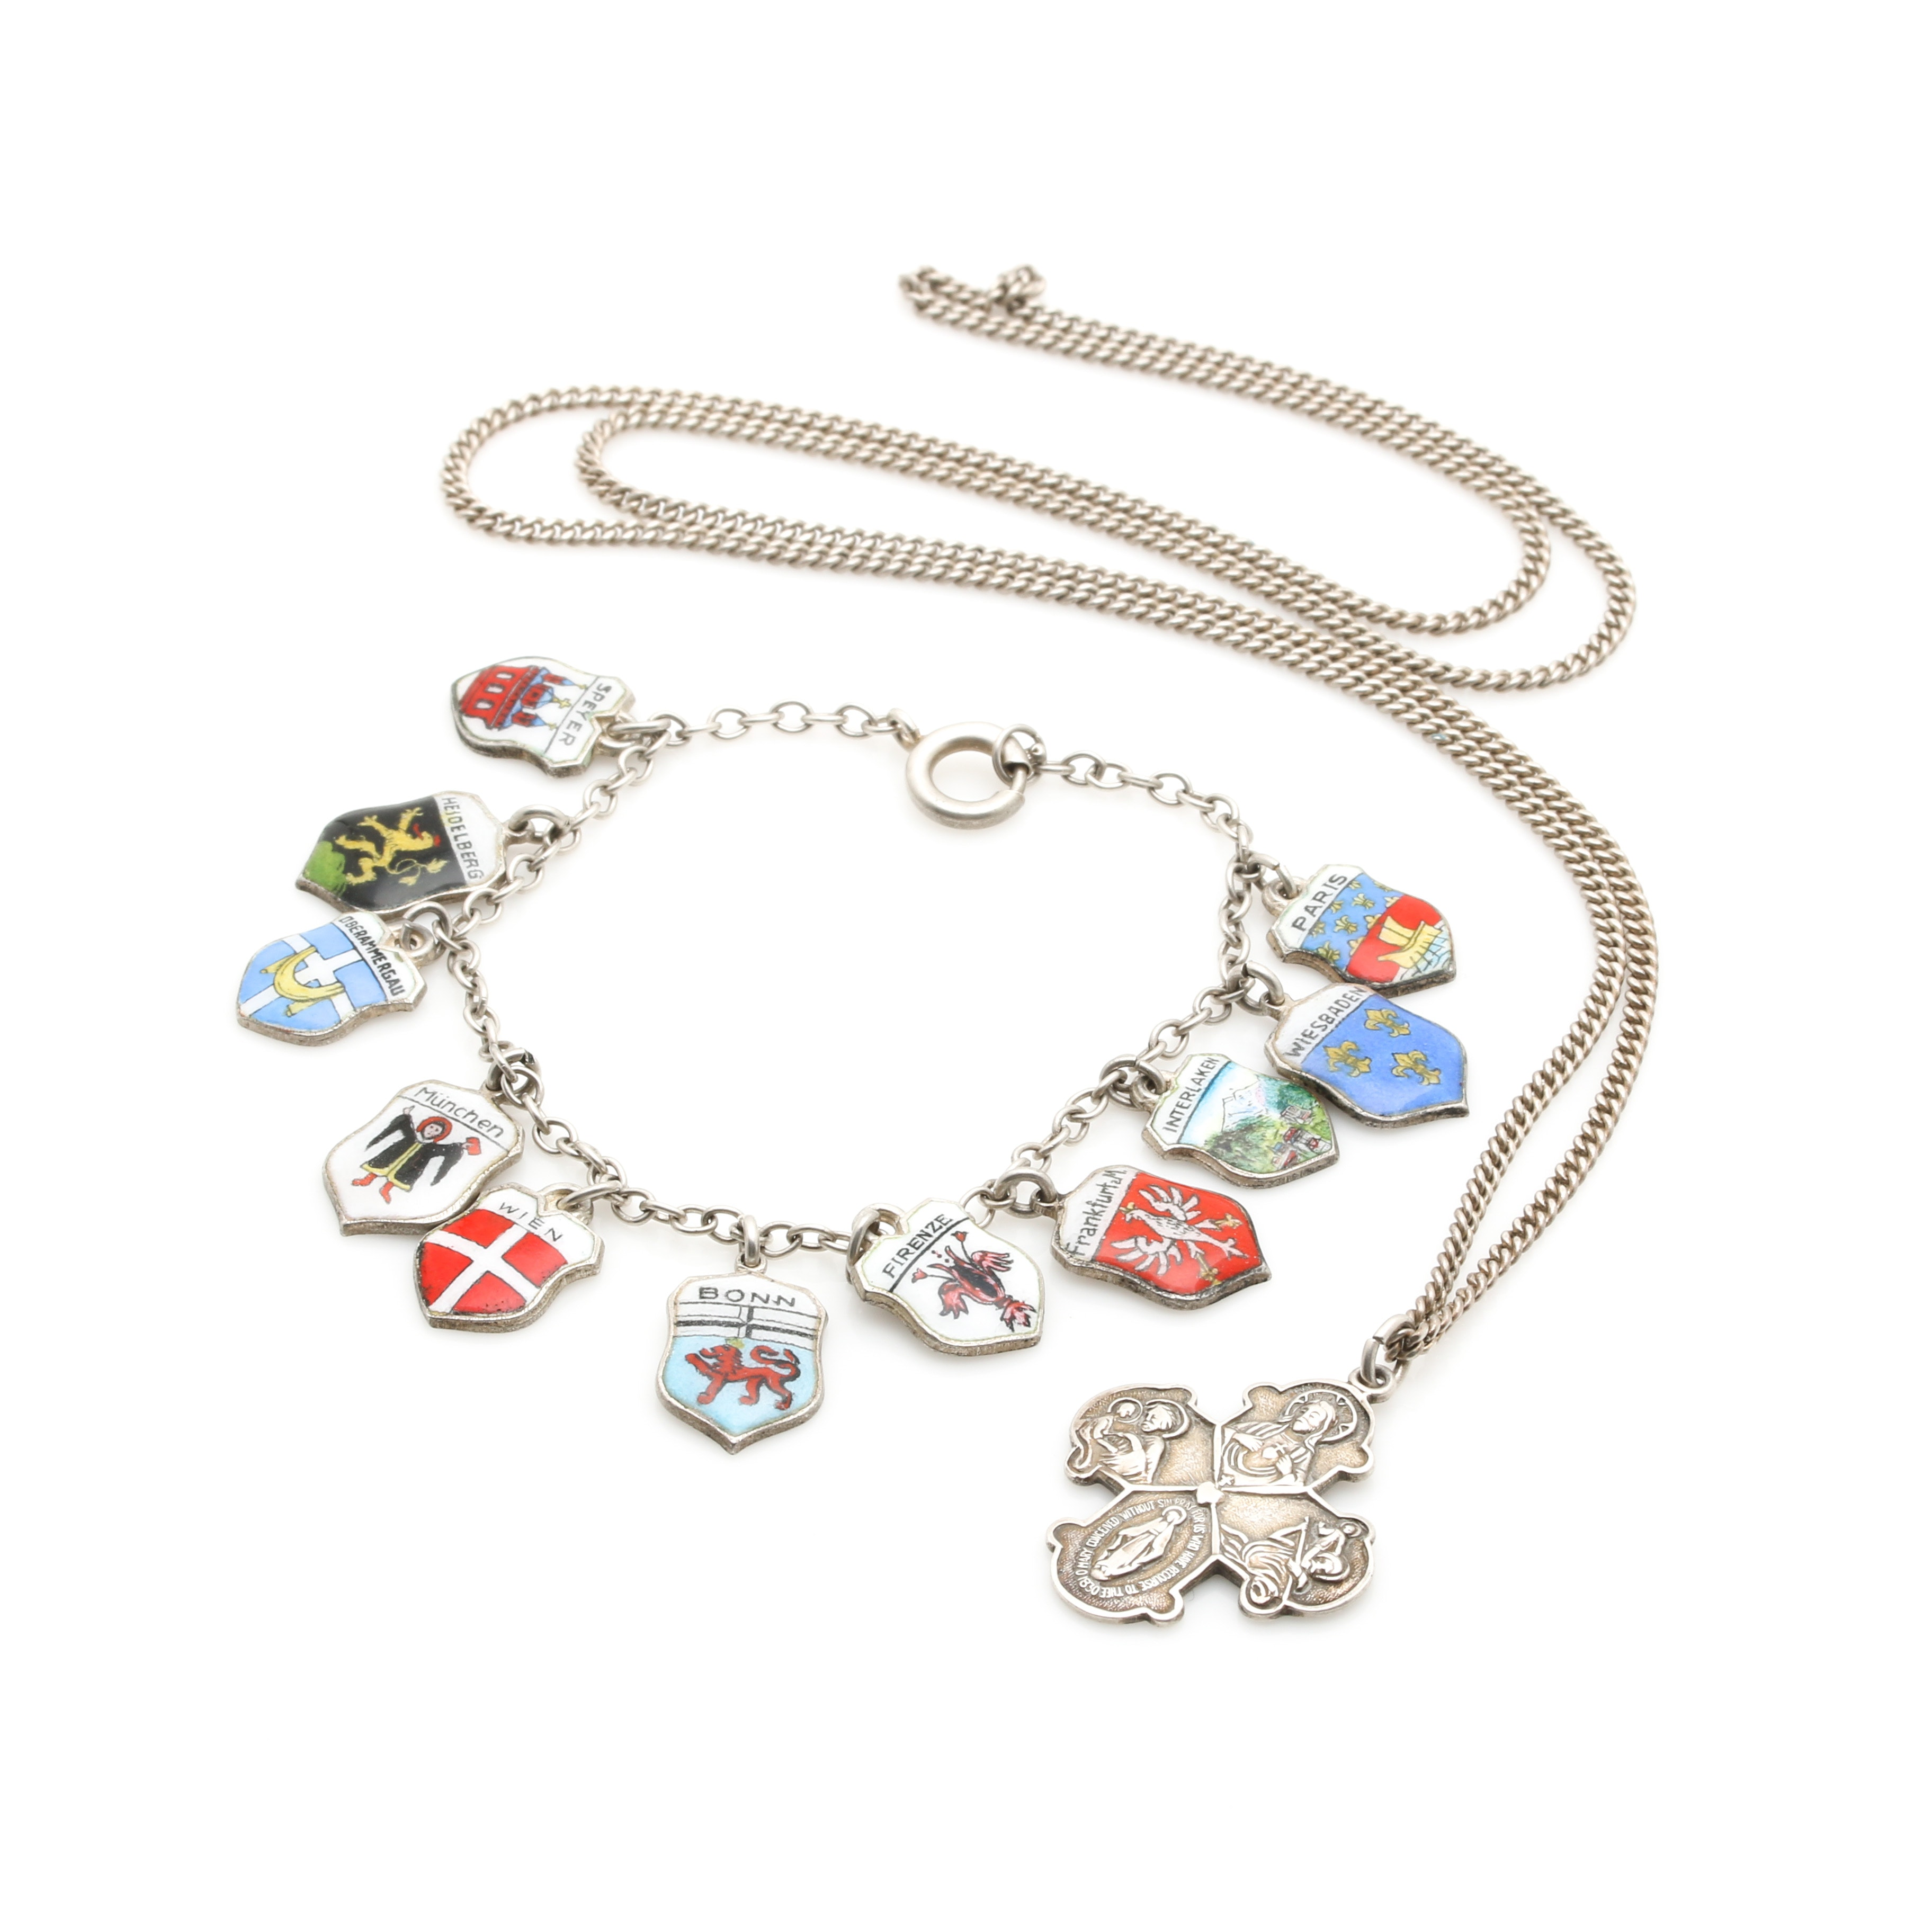 Sterling Silver Necklace and Charm Bracelet Including 800 Silver Charms